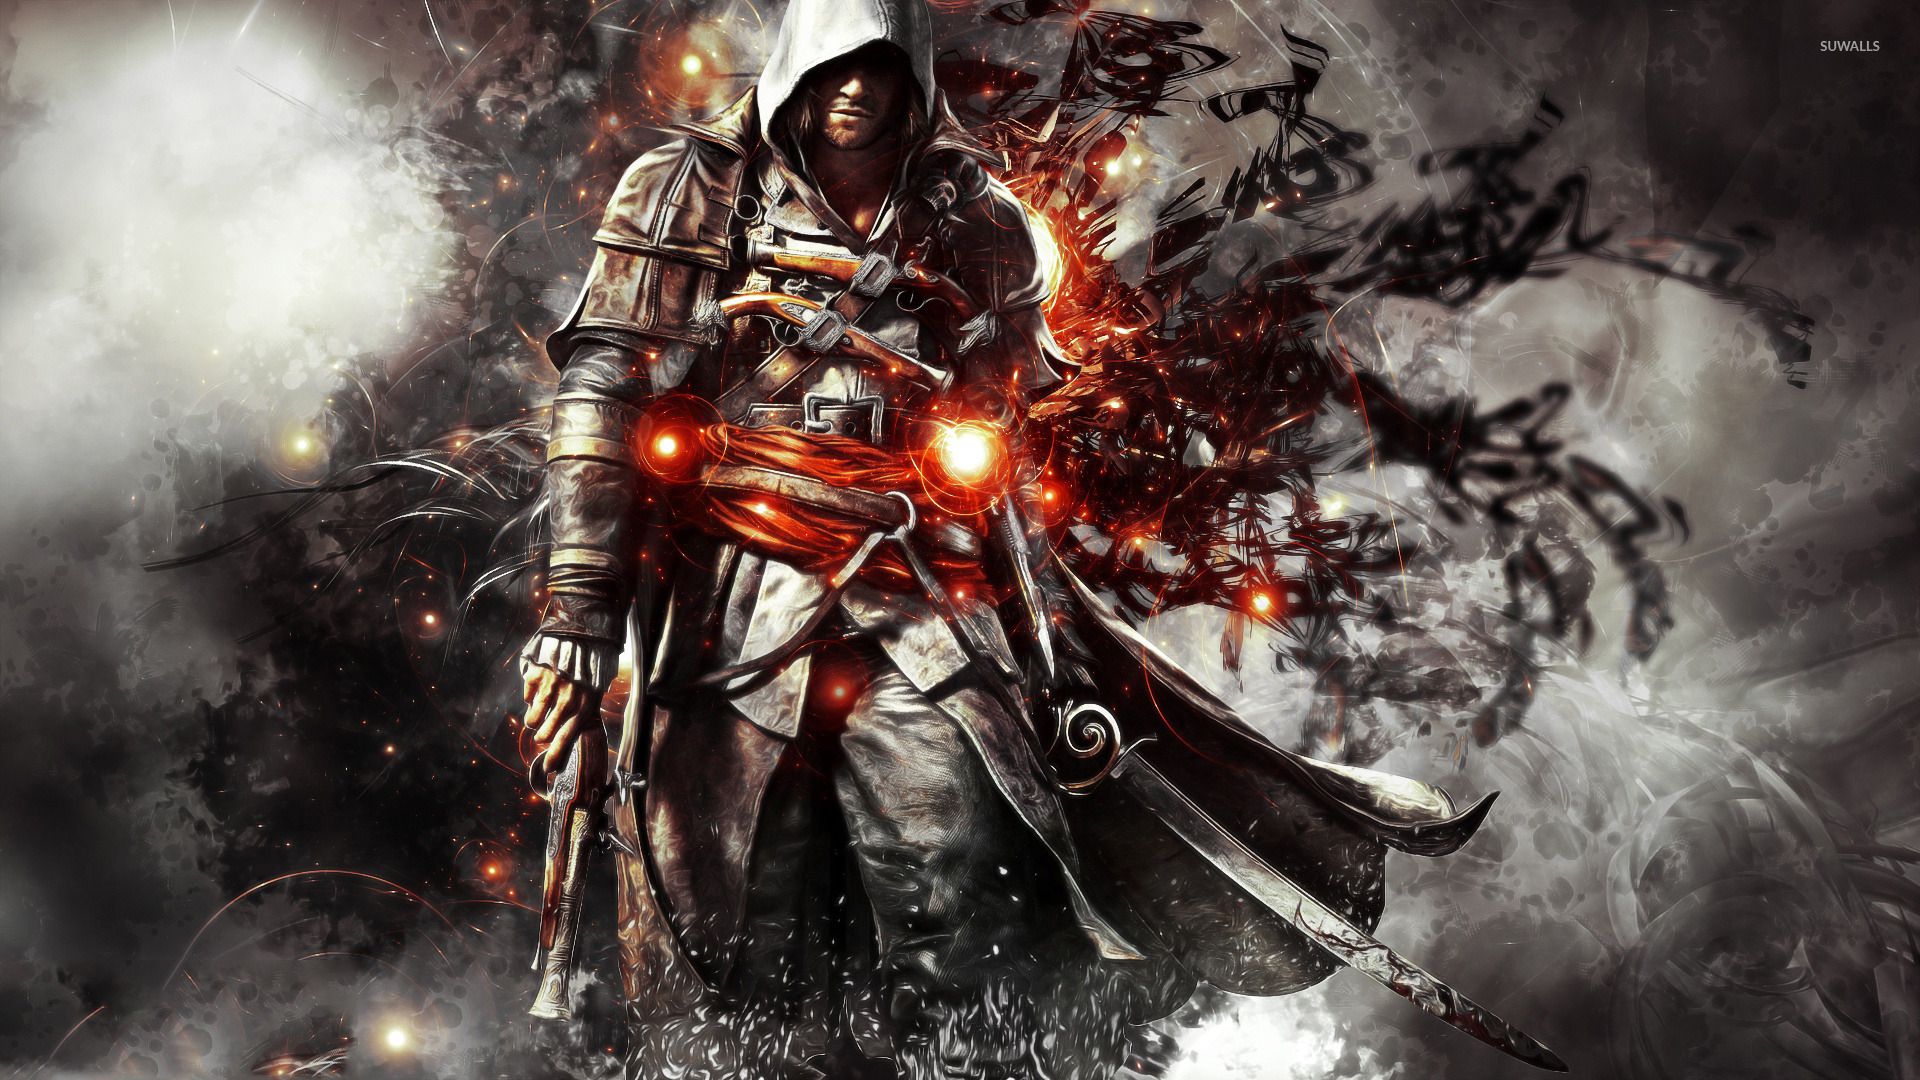 Edward Kenway Assassin S Creed Iv Black Flag Wallpaper Game